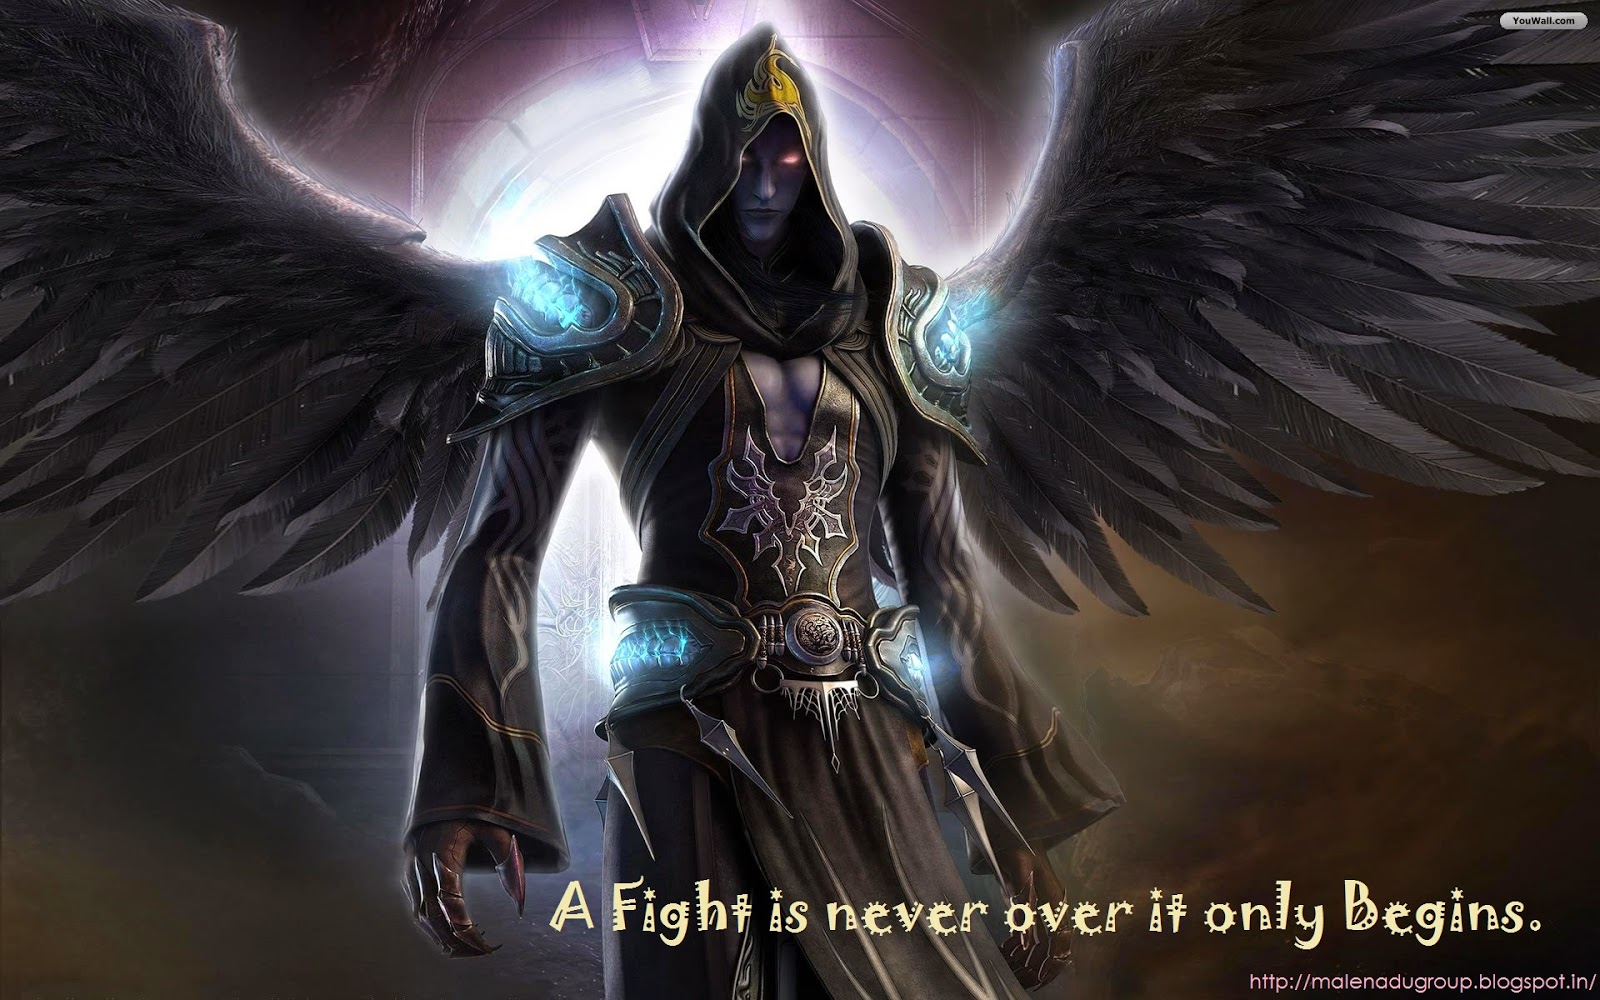 Beginning of Fight Inspirational Wallpaper Quotes